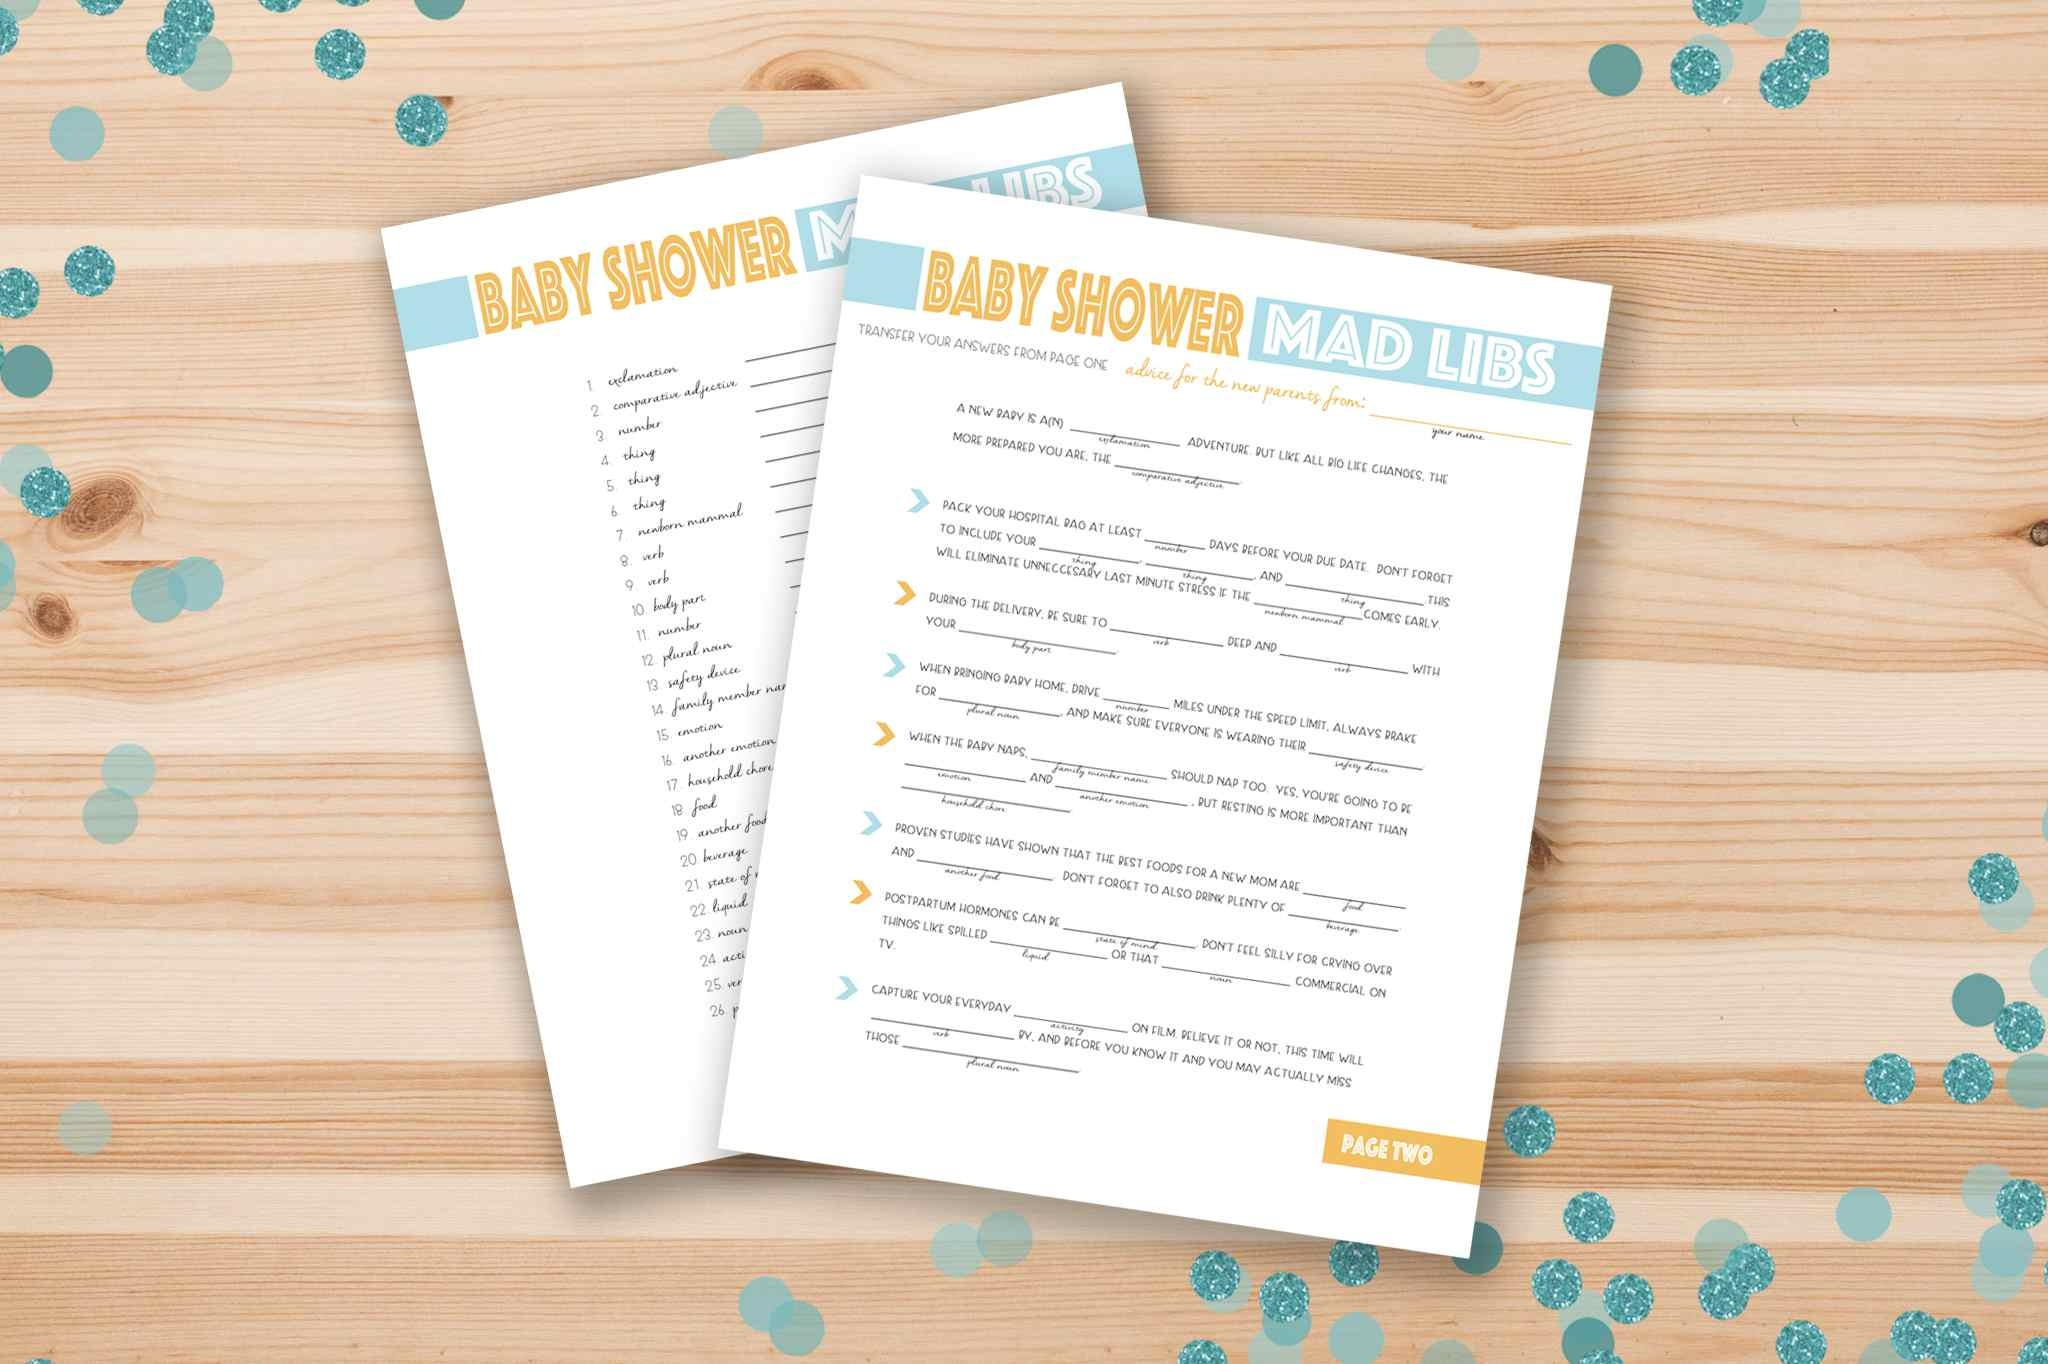 67 Free Printable Baby Shower Games - Unique Baby Shower Games Free Printable